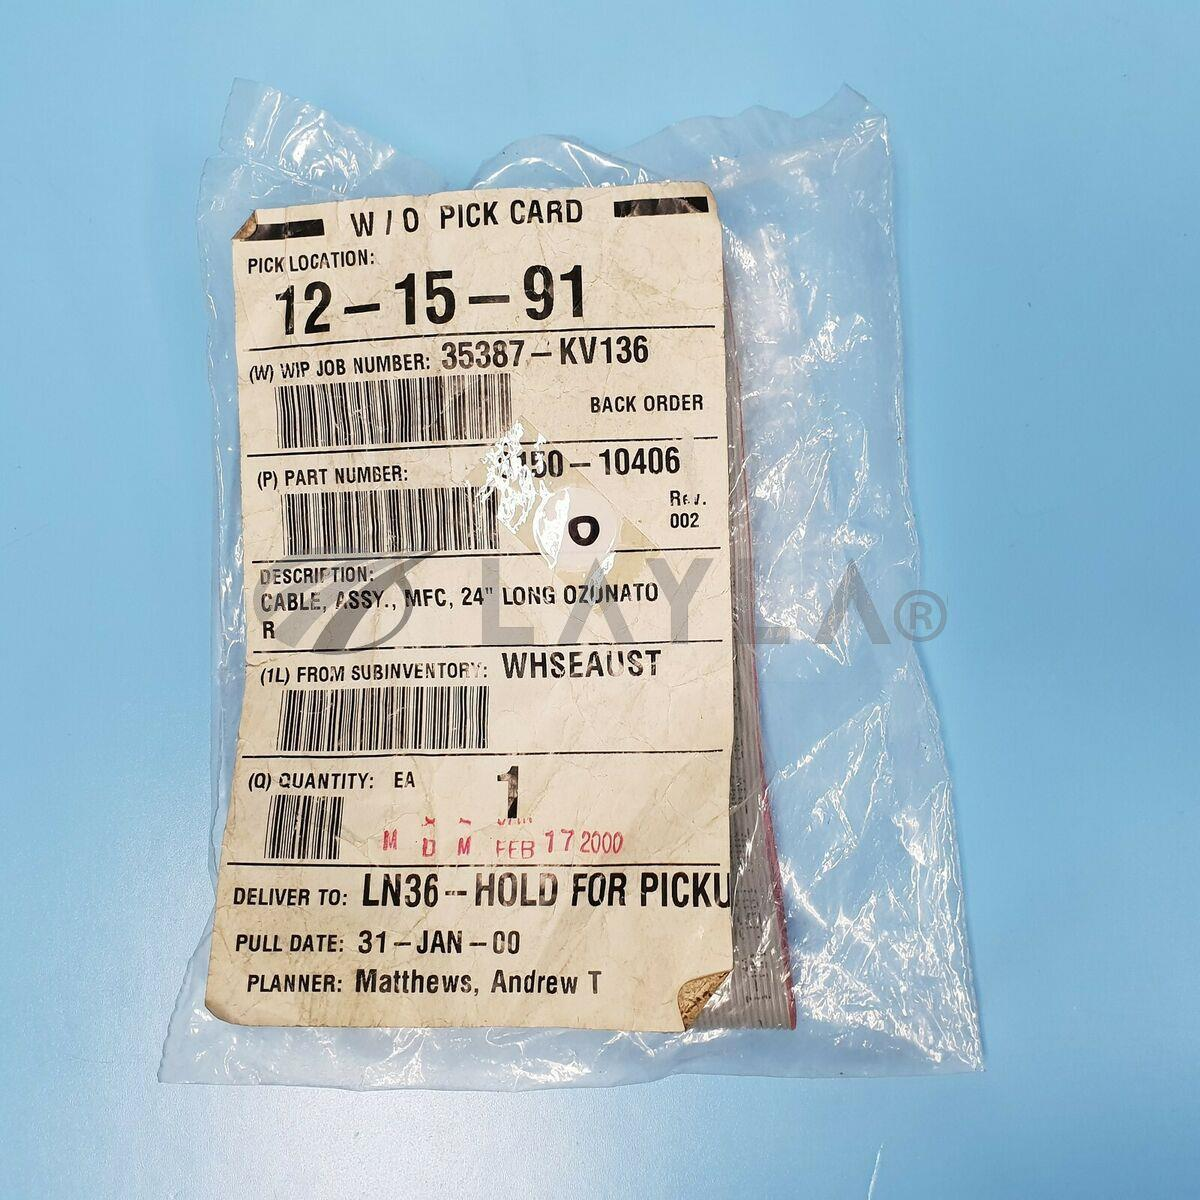 0150-10406/-/142-0502// AMAT APPLIED 0150-10406 CABLE, ASSY., MFC, 24 LONG OZ NEW/AMAT Applied Materials/-_02